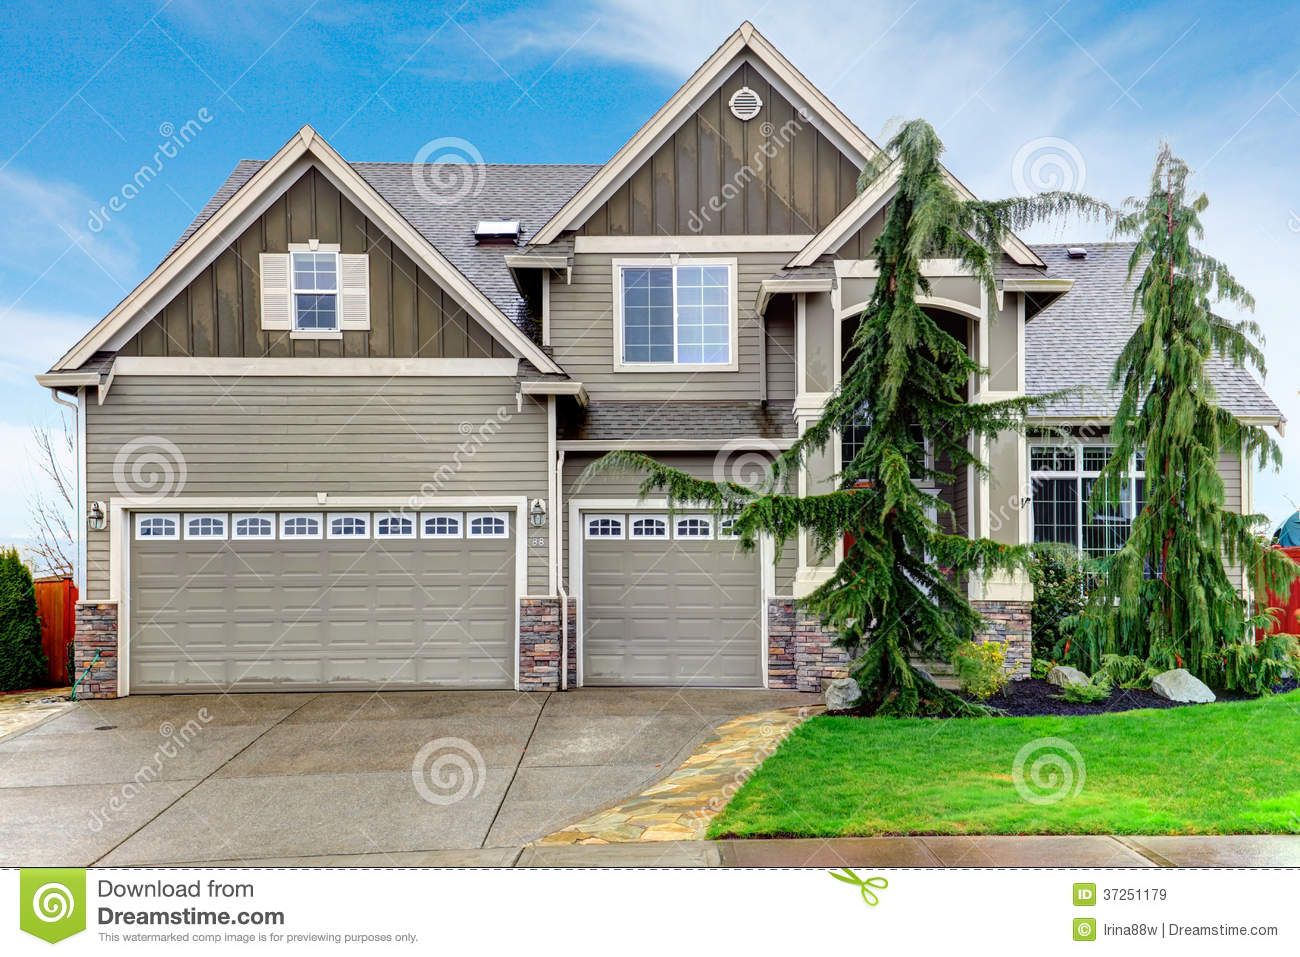 Pretty Siding House With Columns Stoned At Base Stock Image - Image of blue, outside: 37251179